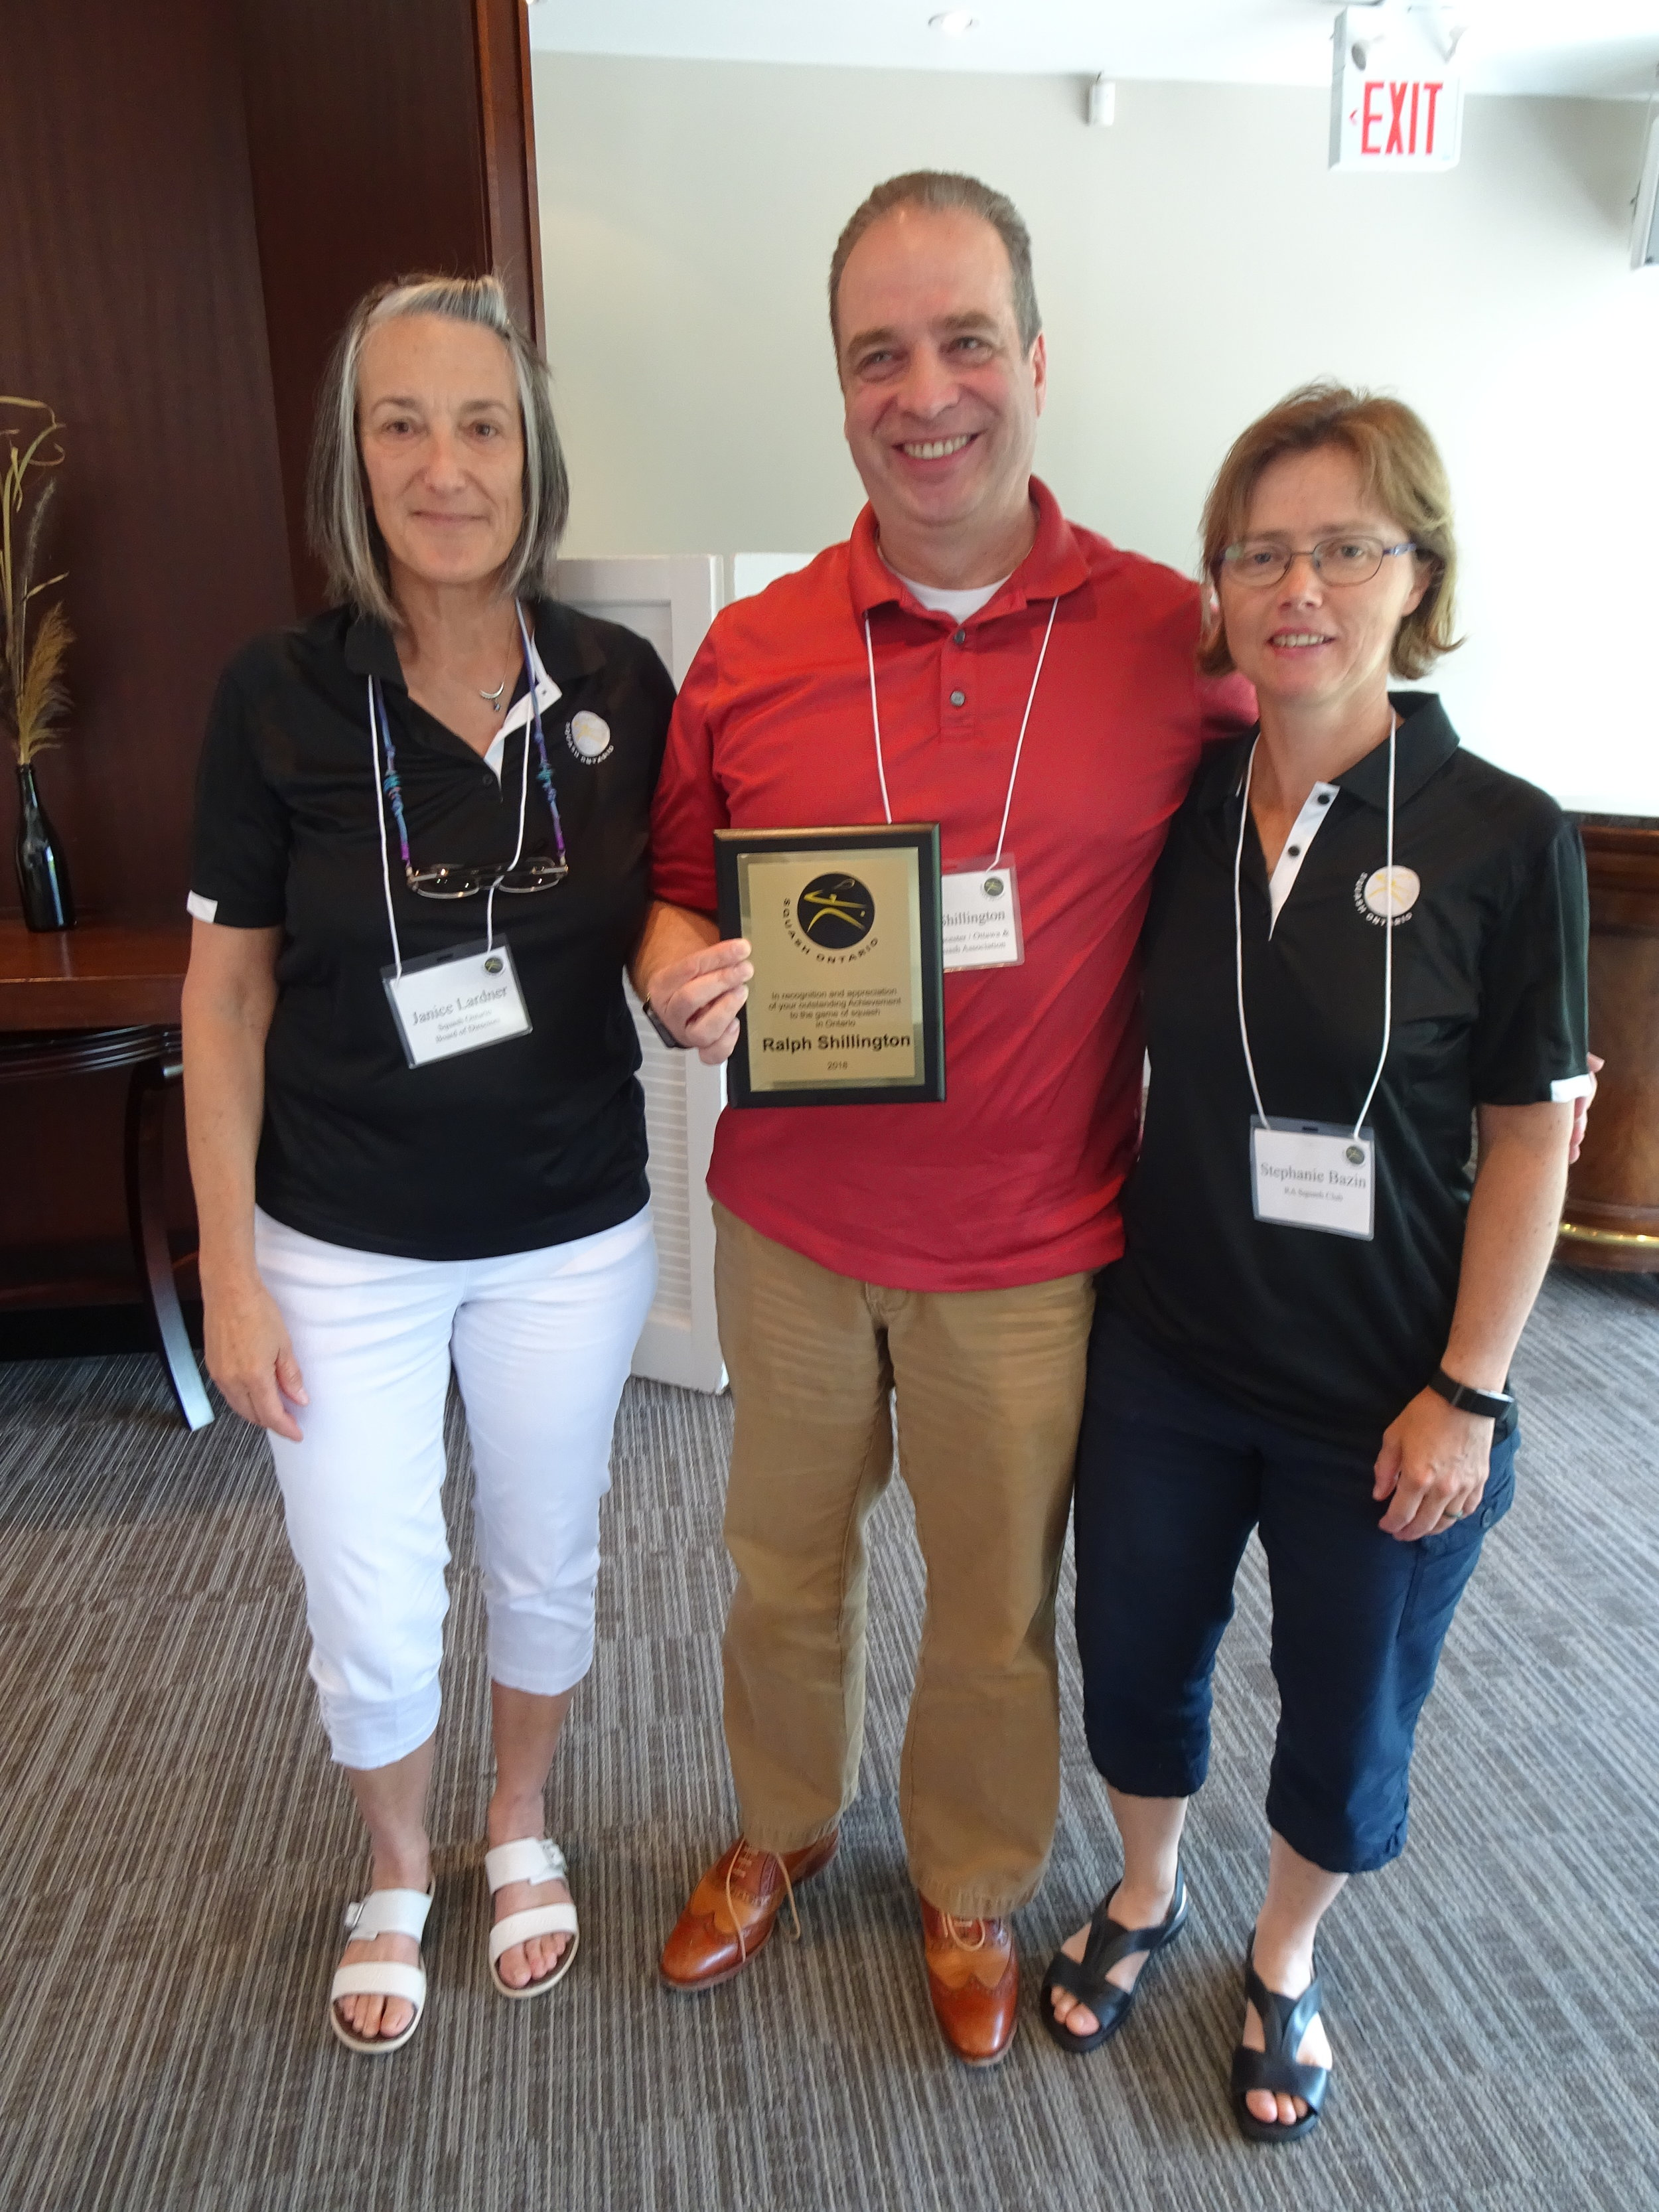 Ralph Shillington accepting his award with Squash Ontario Past President Janice Lardner (left) and Squash Ontario Board Member Stephanie Bazin (right).